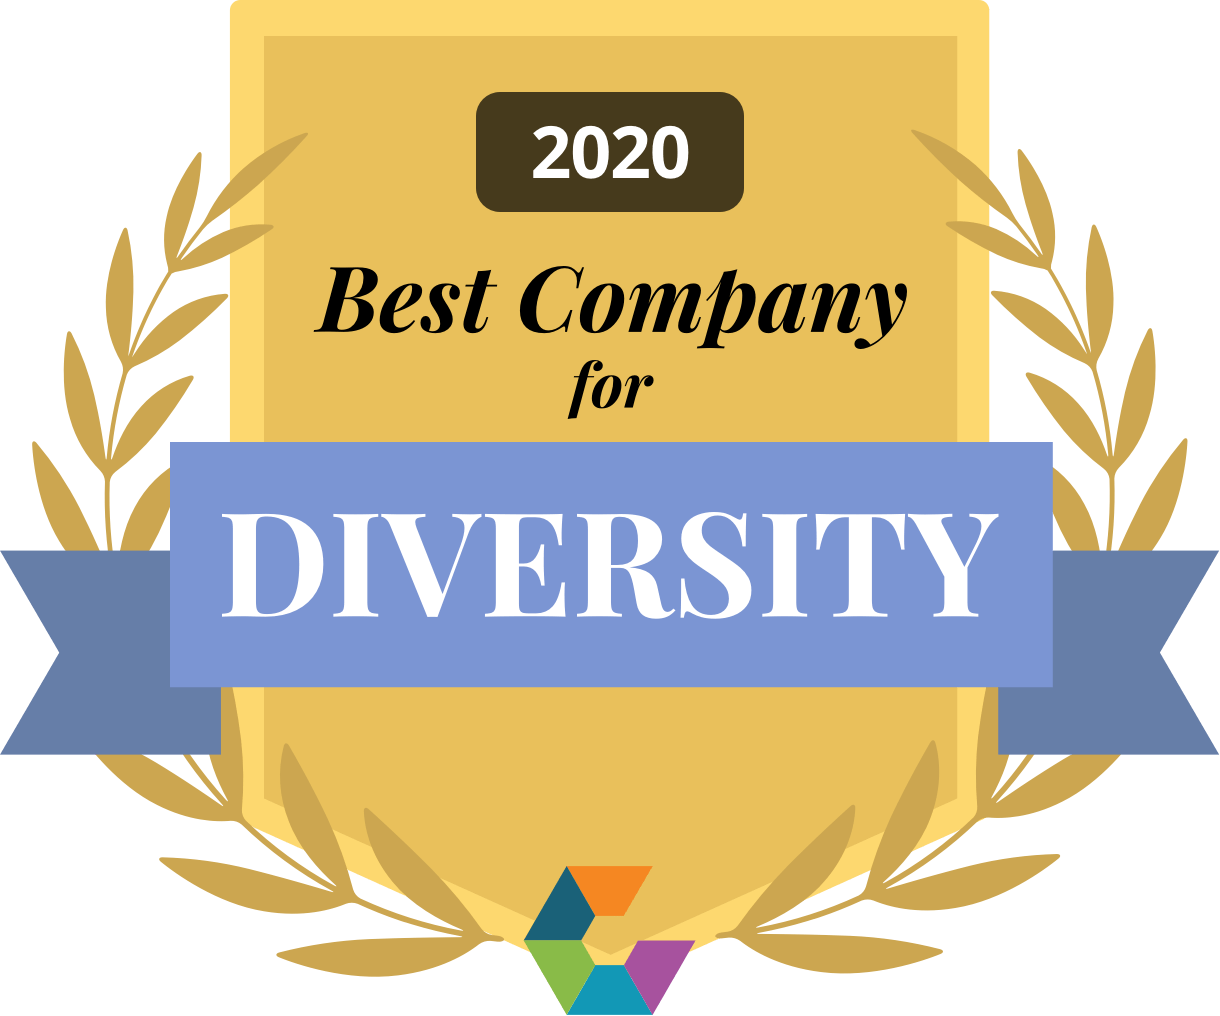 Best company for diversity